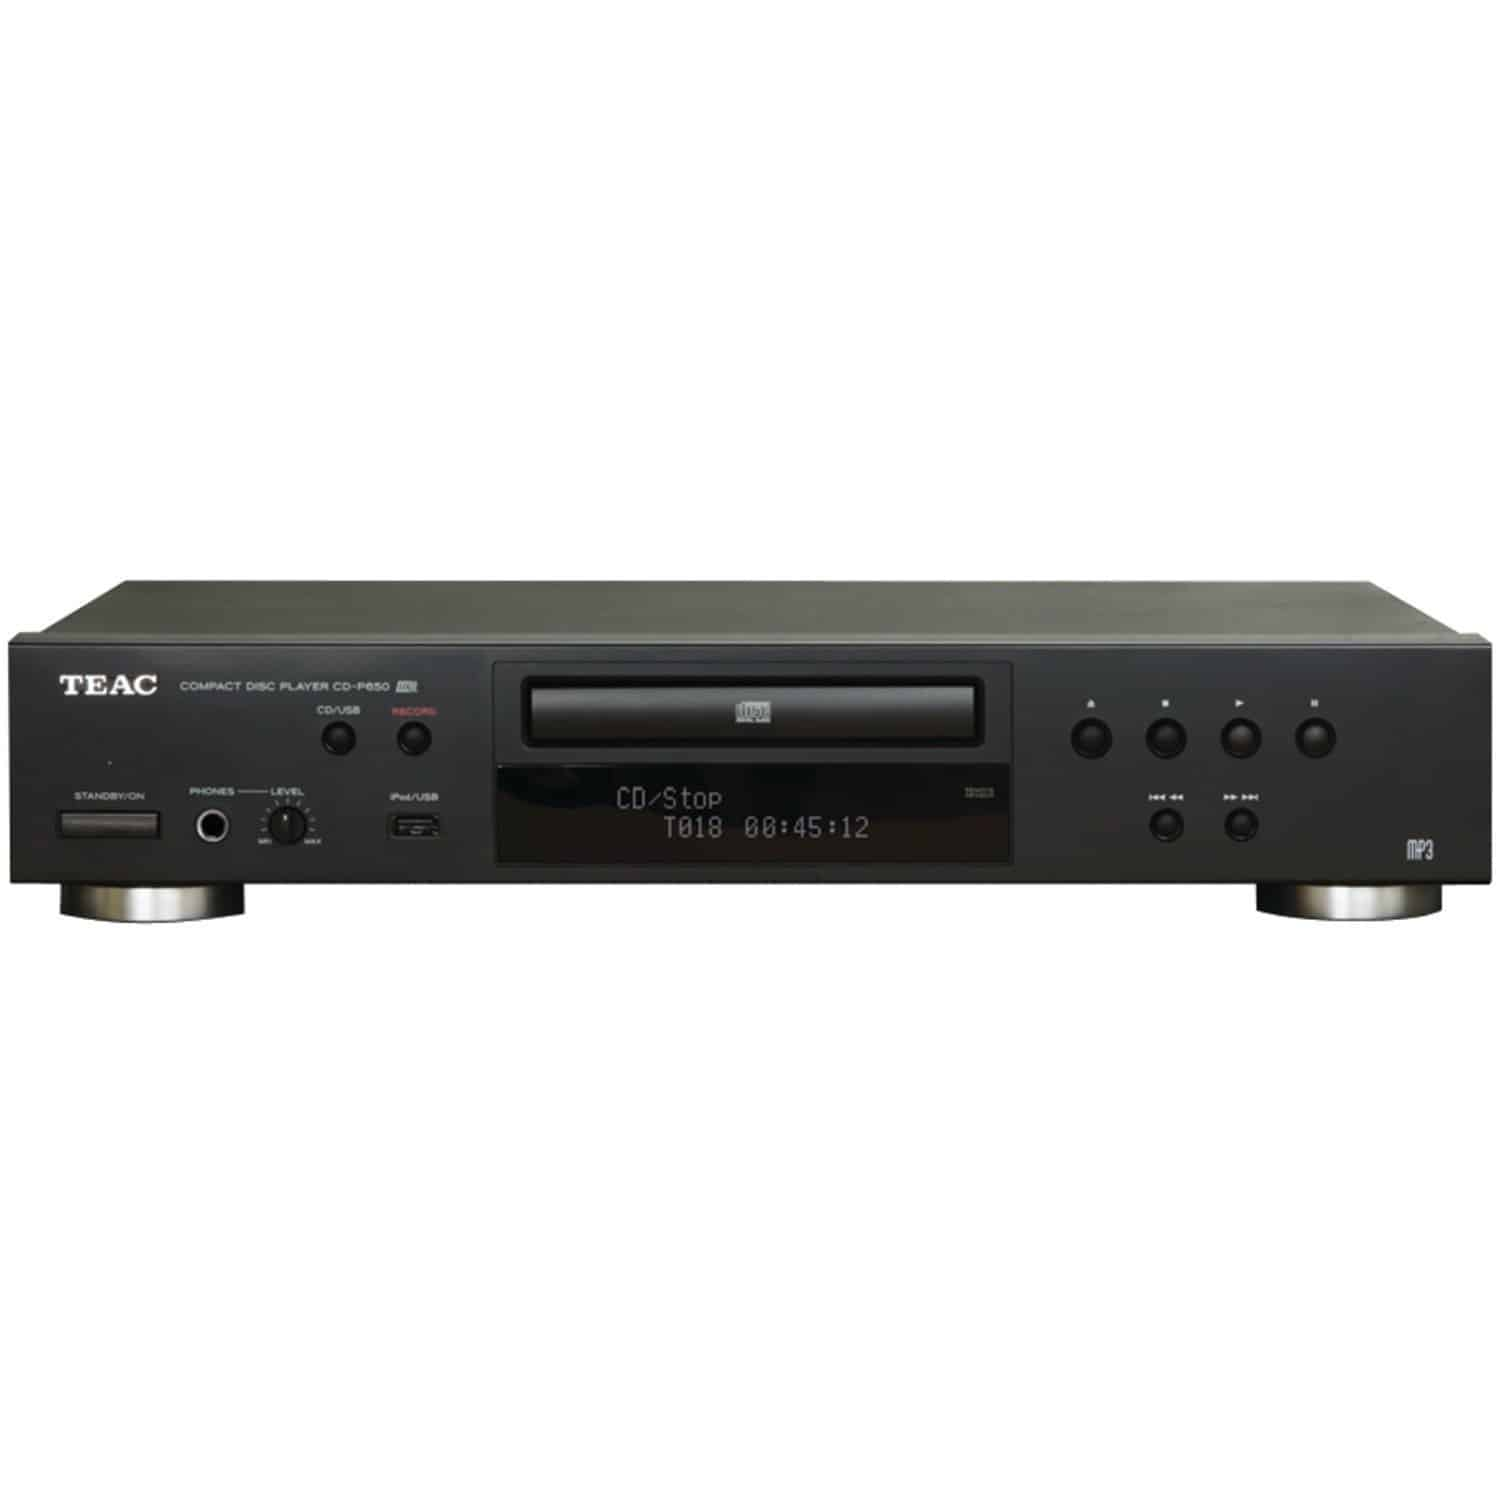 Teac CD-P650 Compact Disc Player with USB Recording (Black)